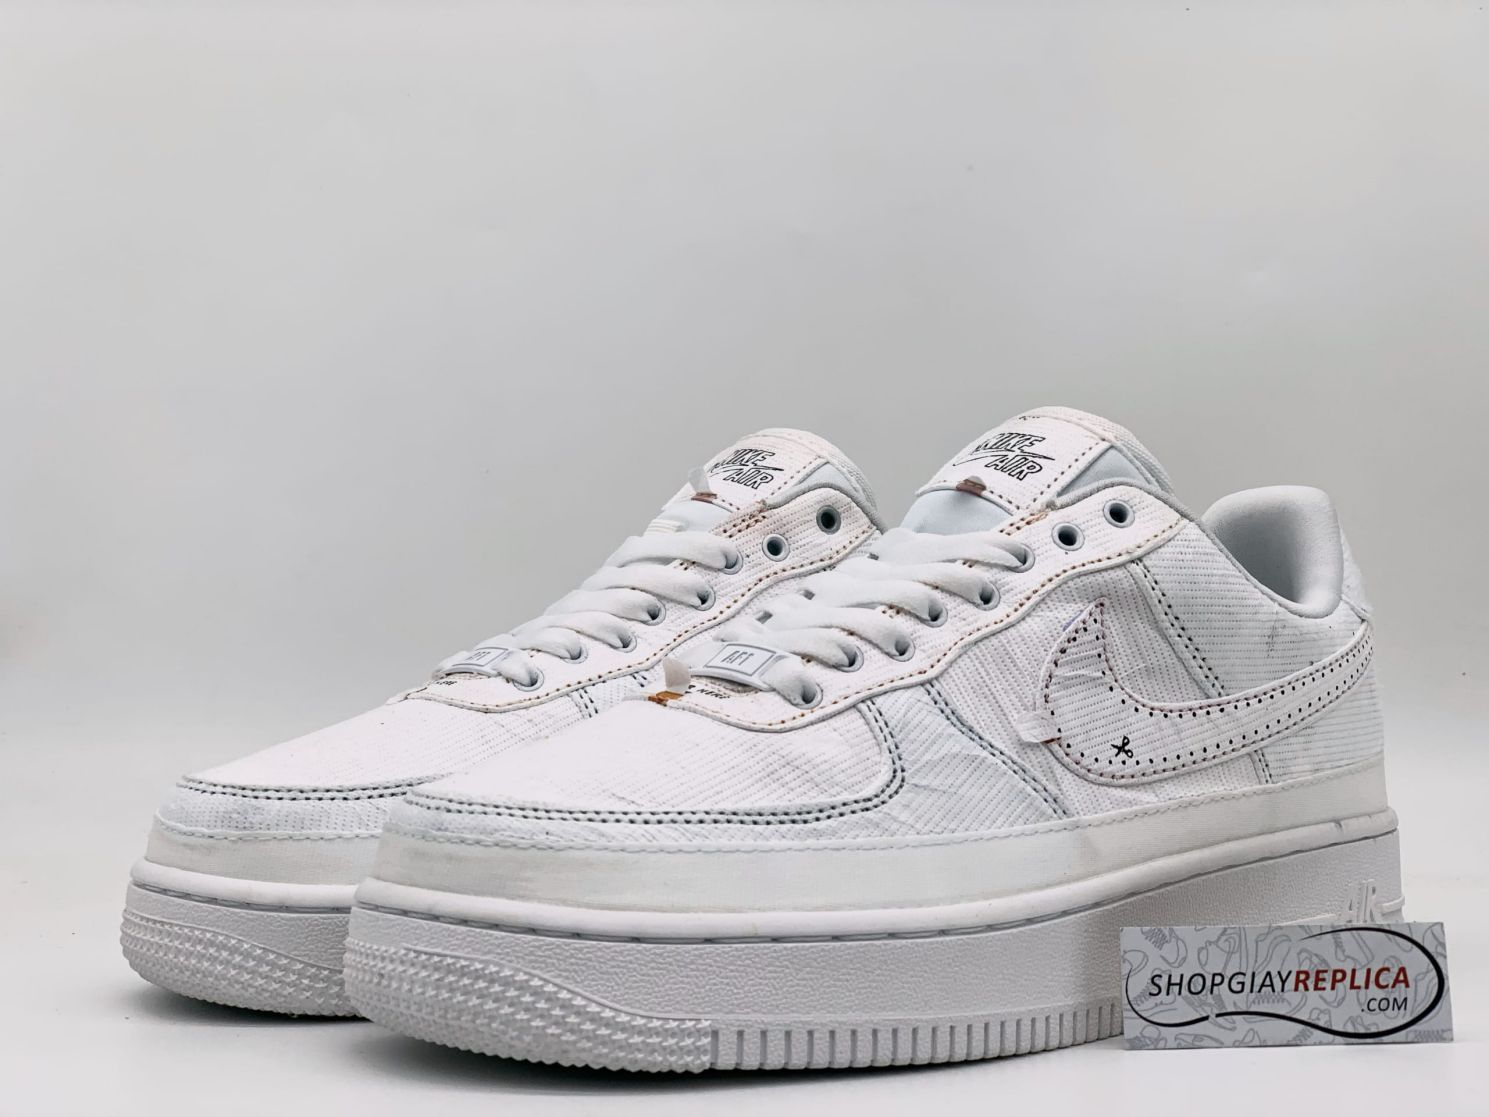 Giày Nike Air Force 1 LX Tear Away Red Swoosh